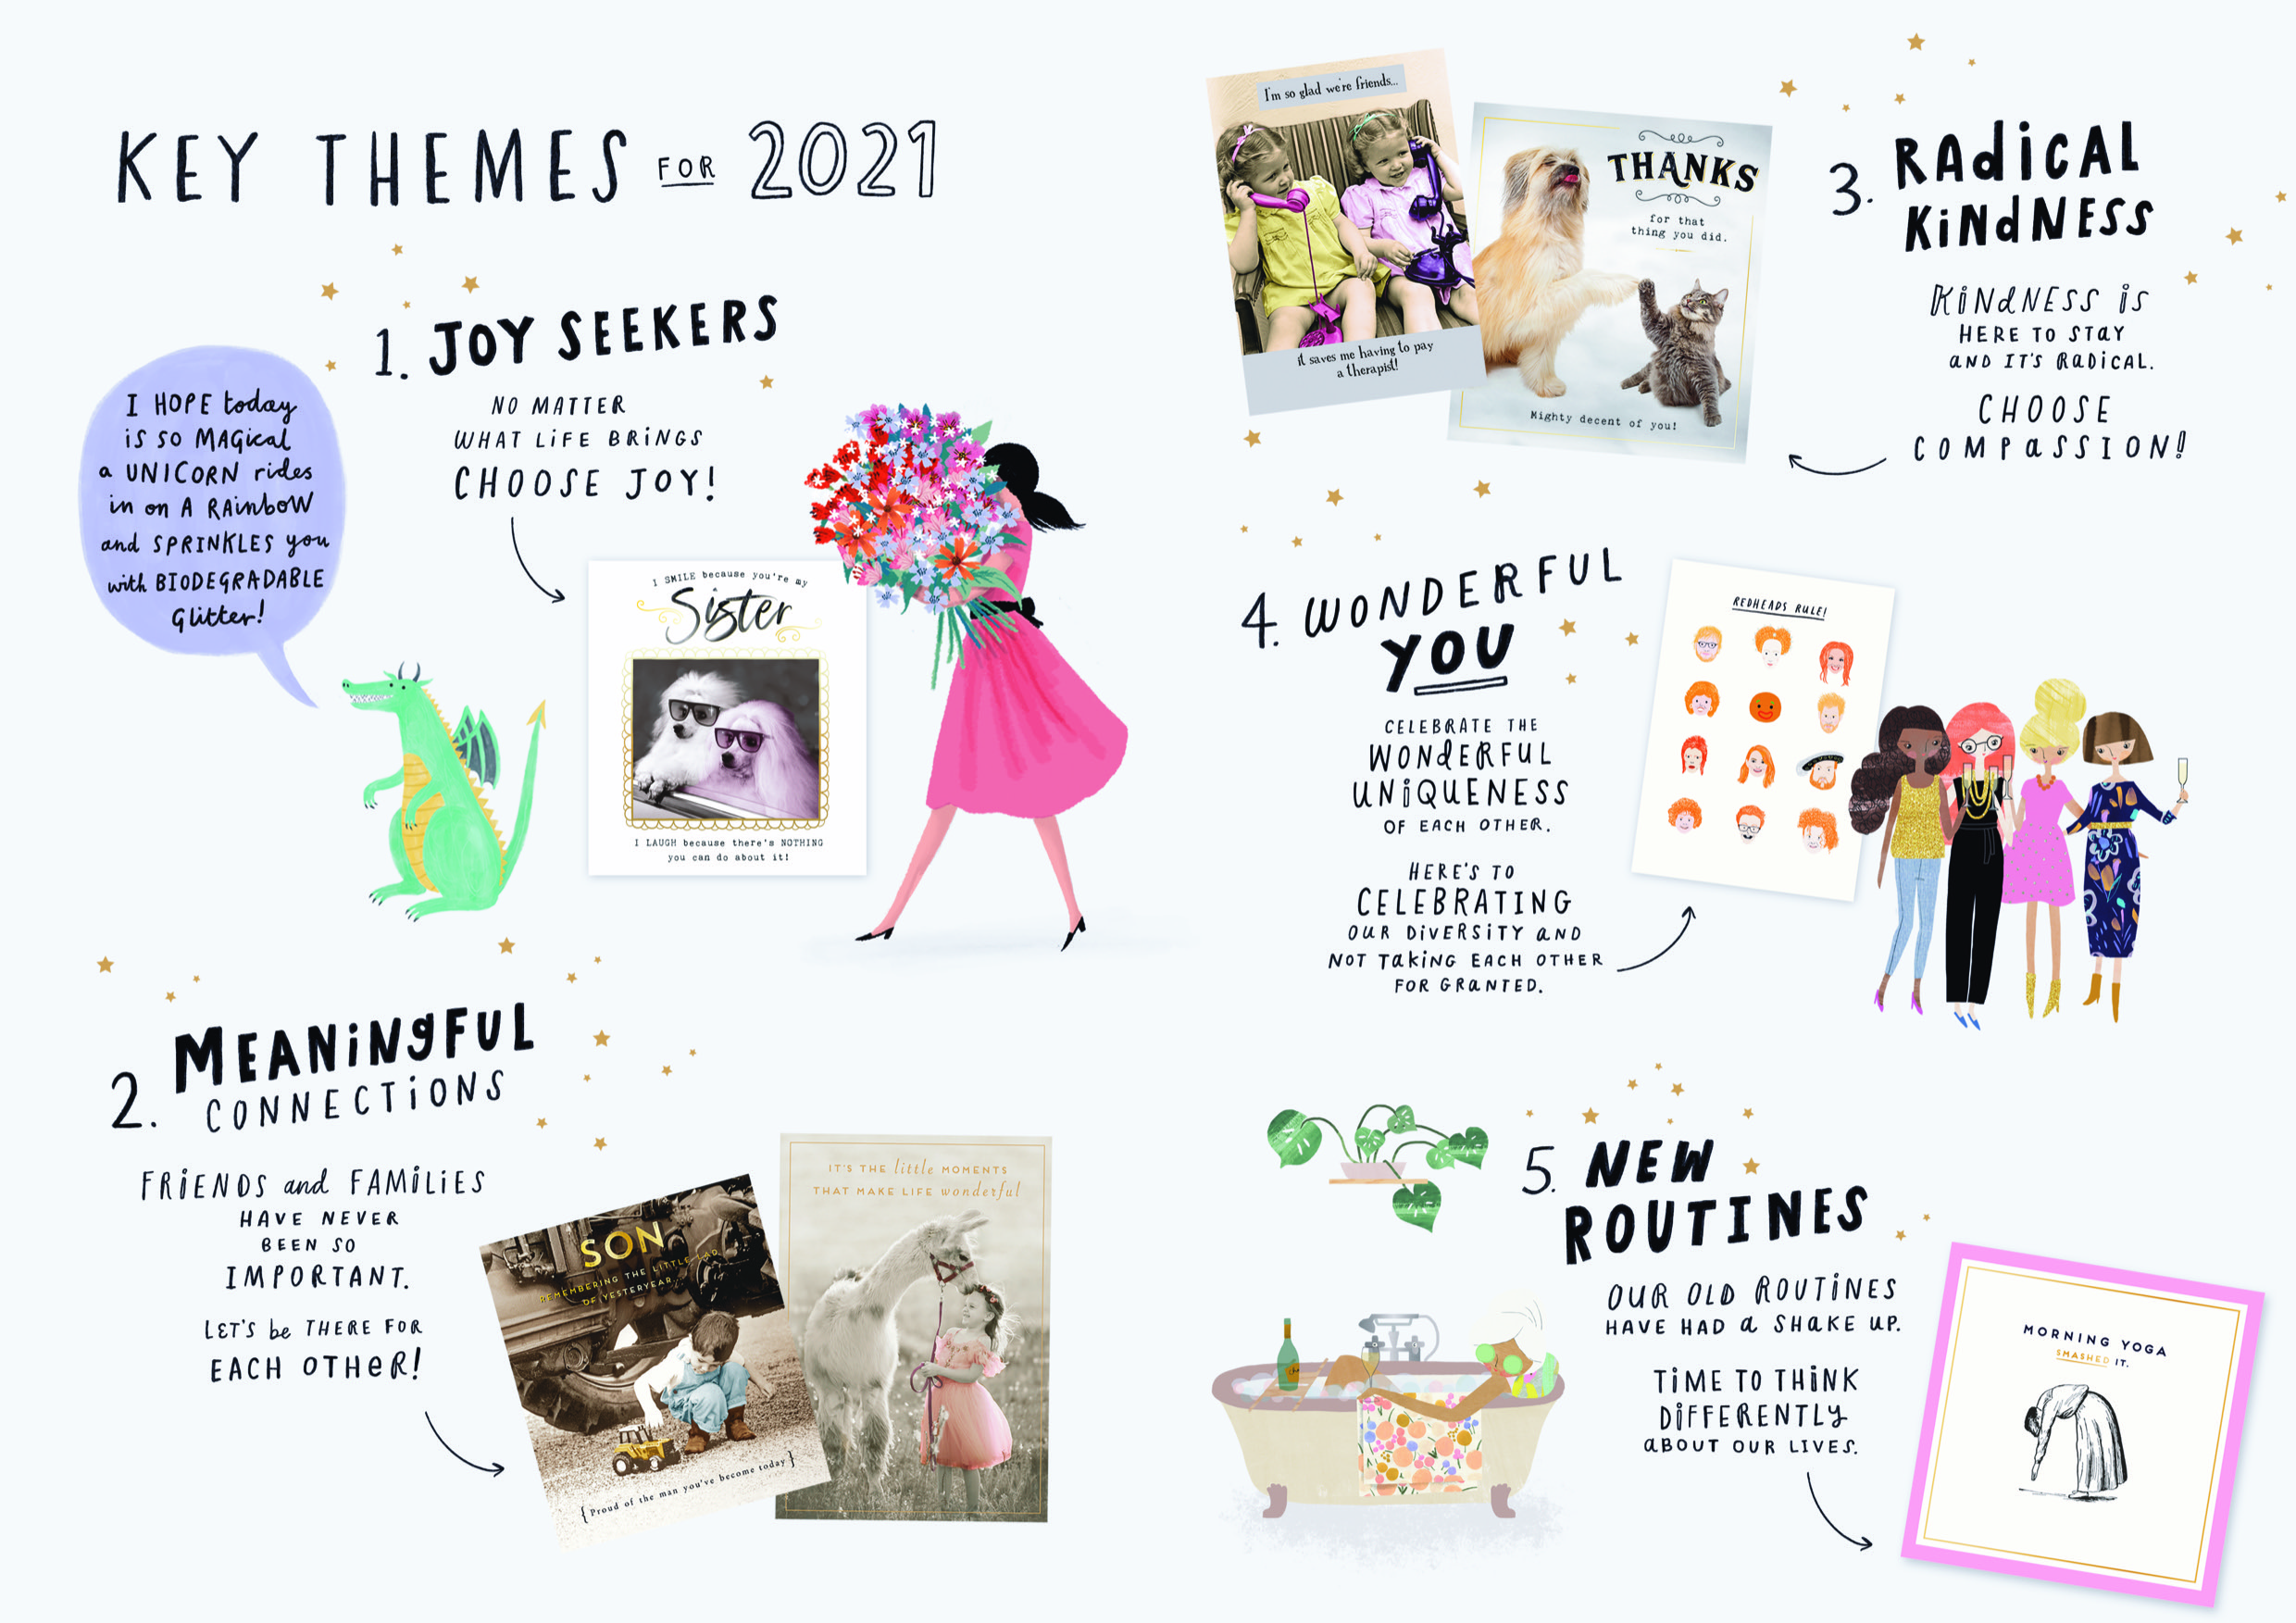 Above: Key themes Pigment has highlighted for 2021.